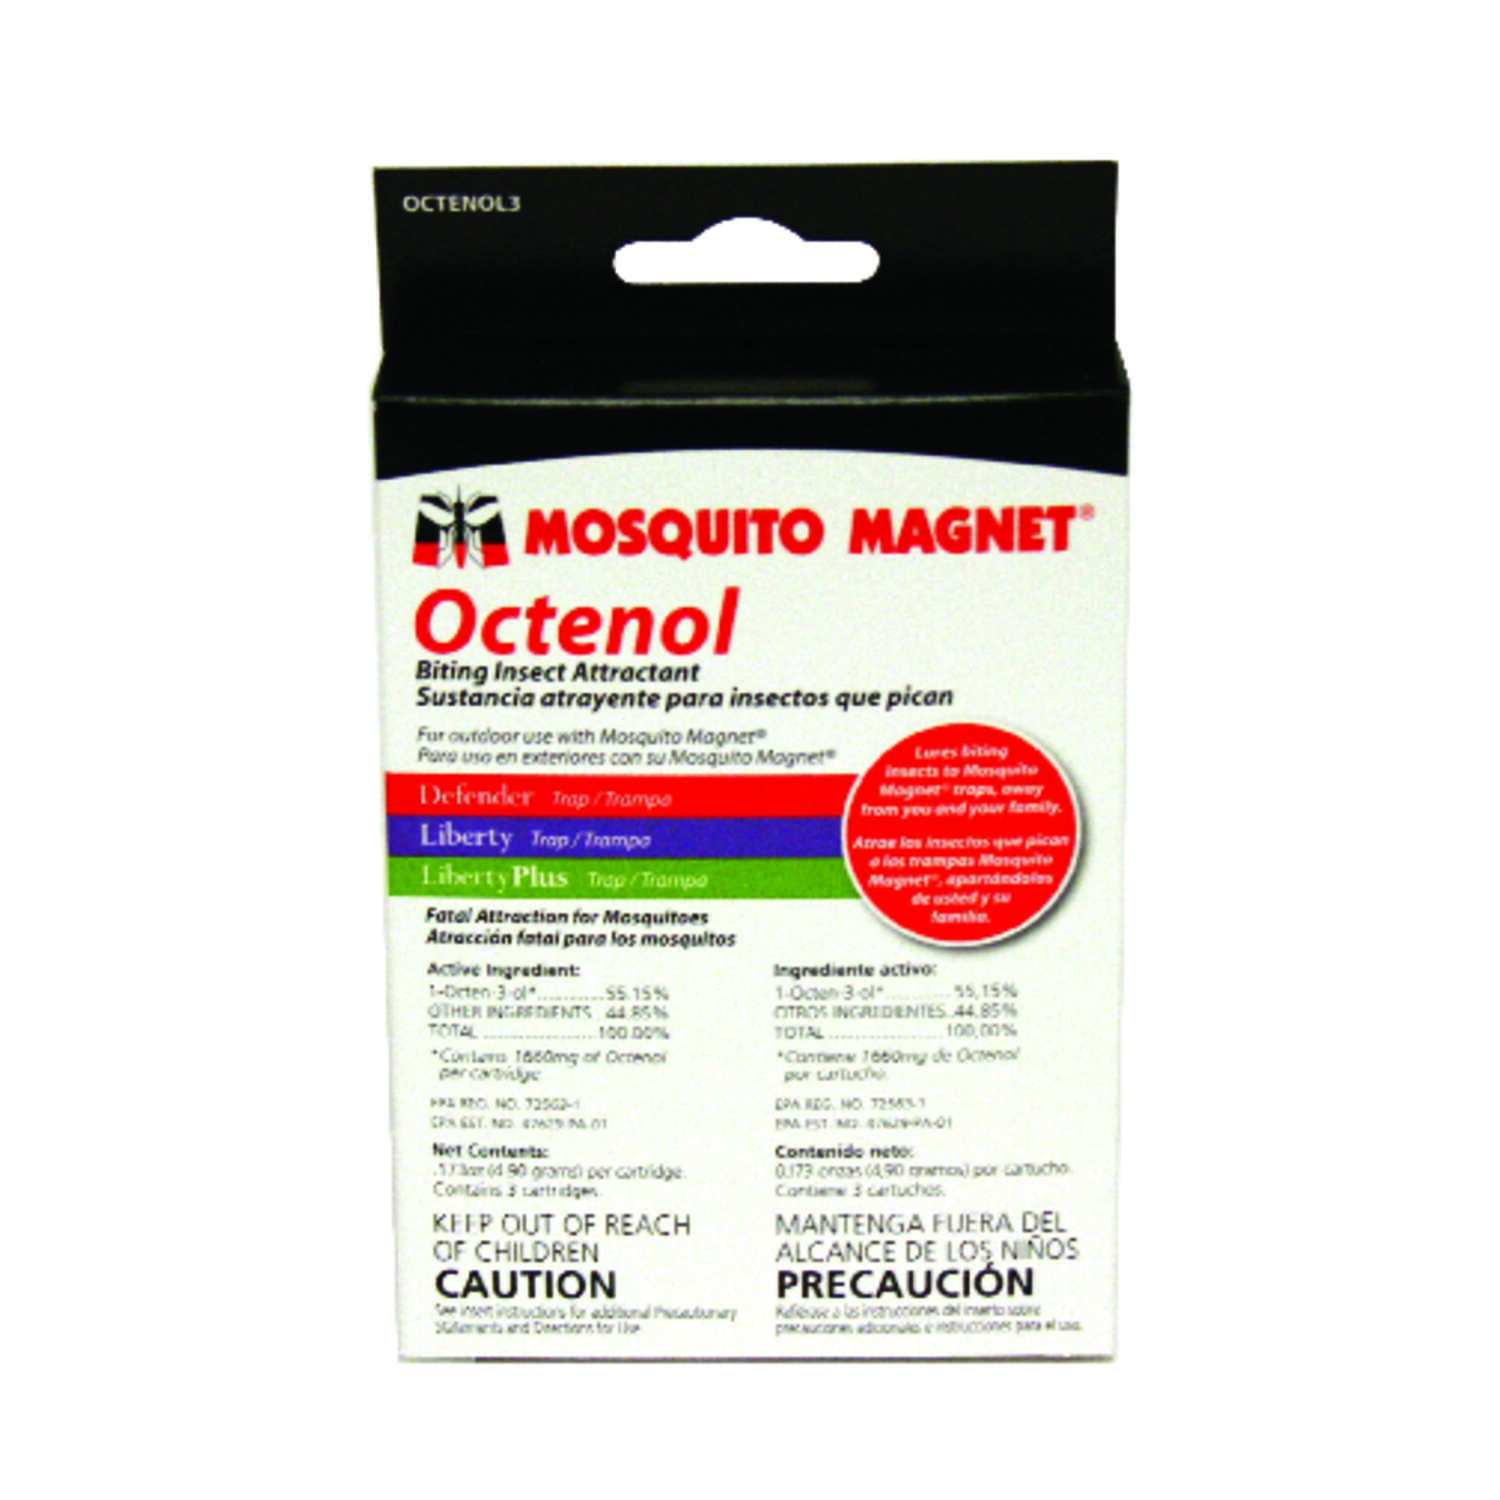 Mosquito Magnet Outdoor Biting Insect Attractant Ace Hardware Swatter Electronics Hobby